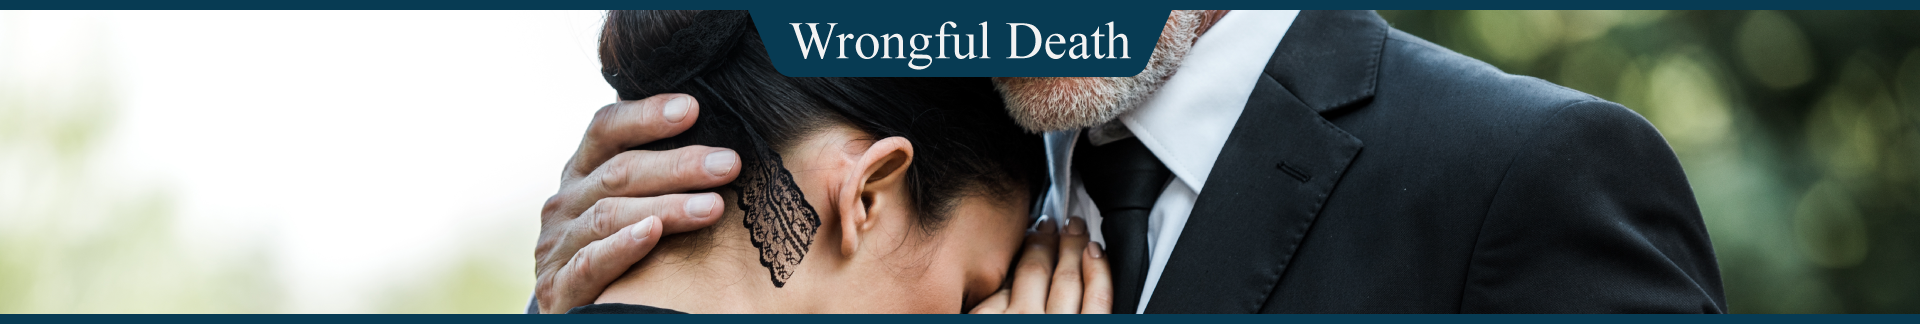 Wrongful Death The Peña Law Firm Miami